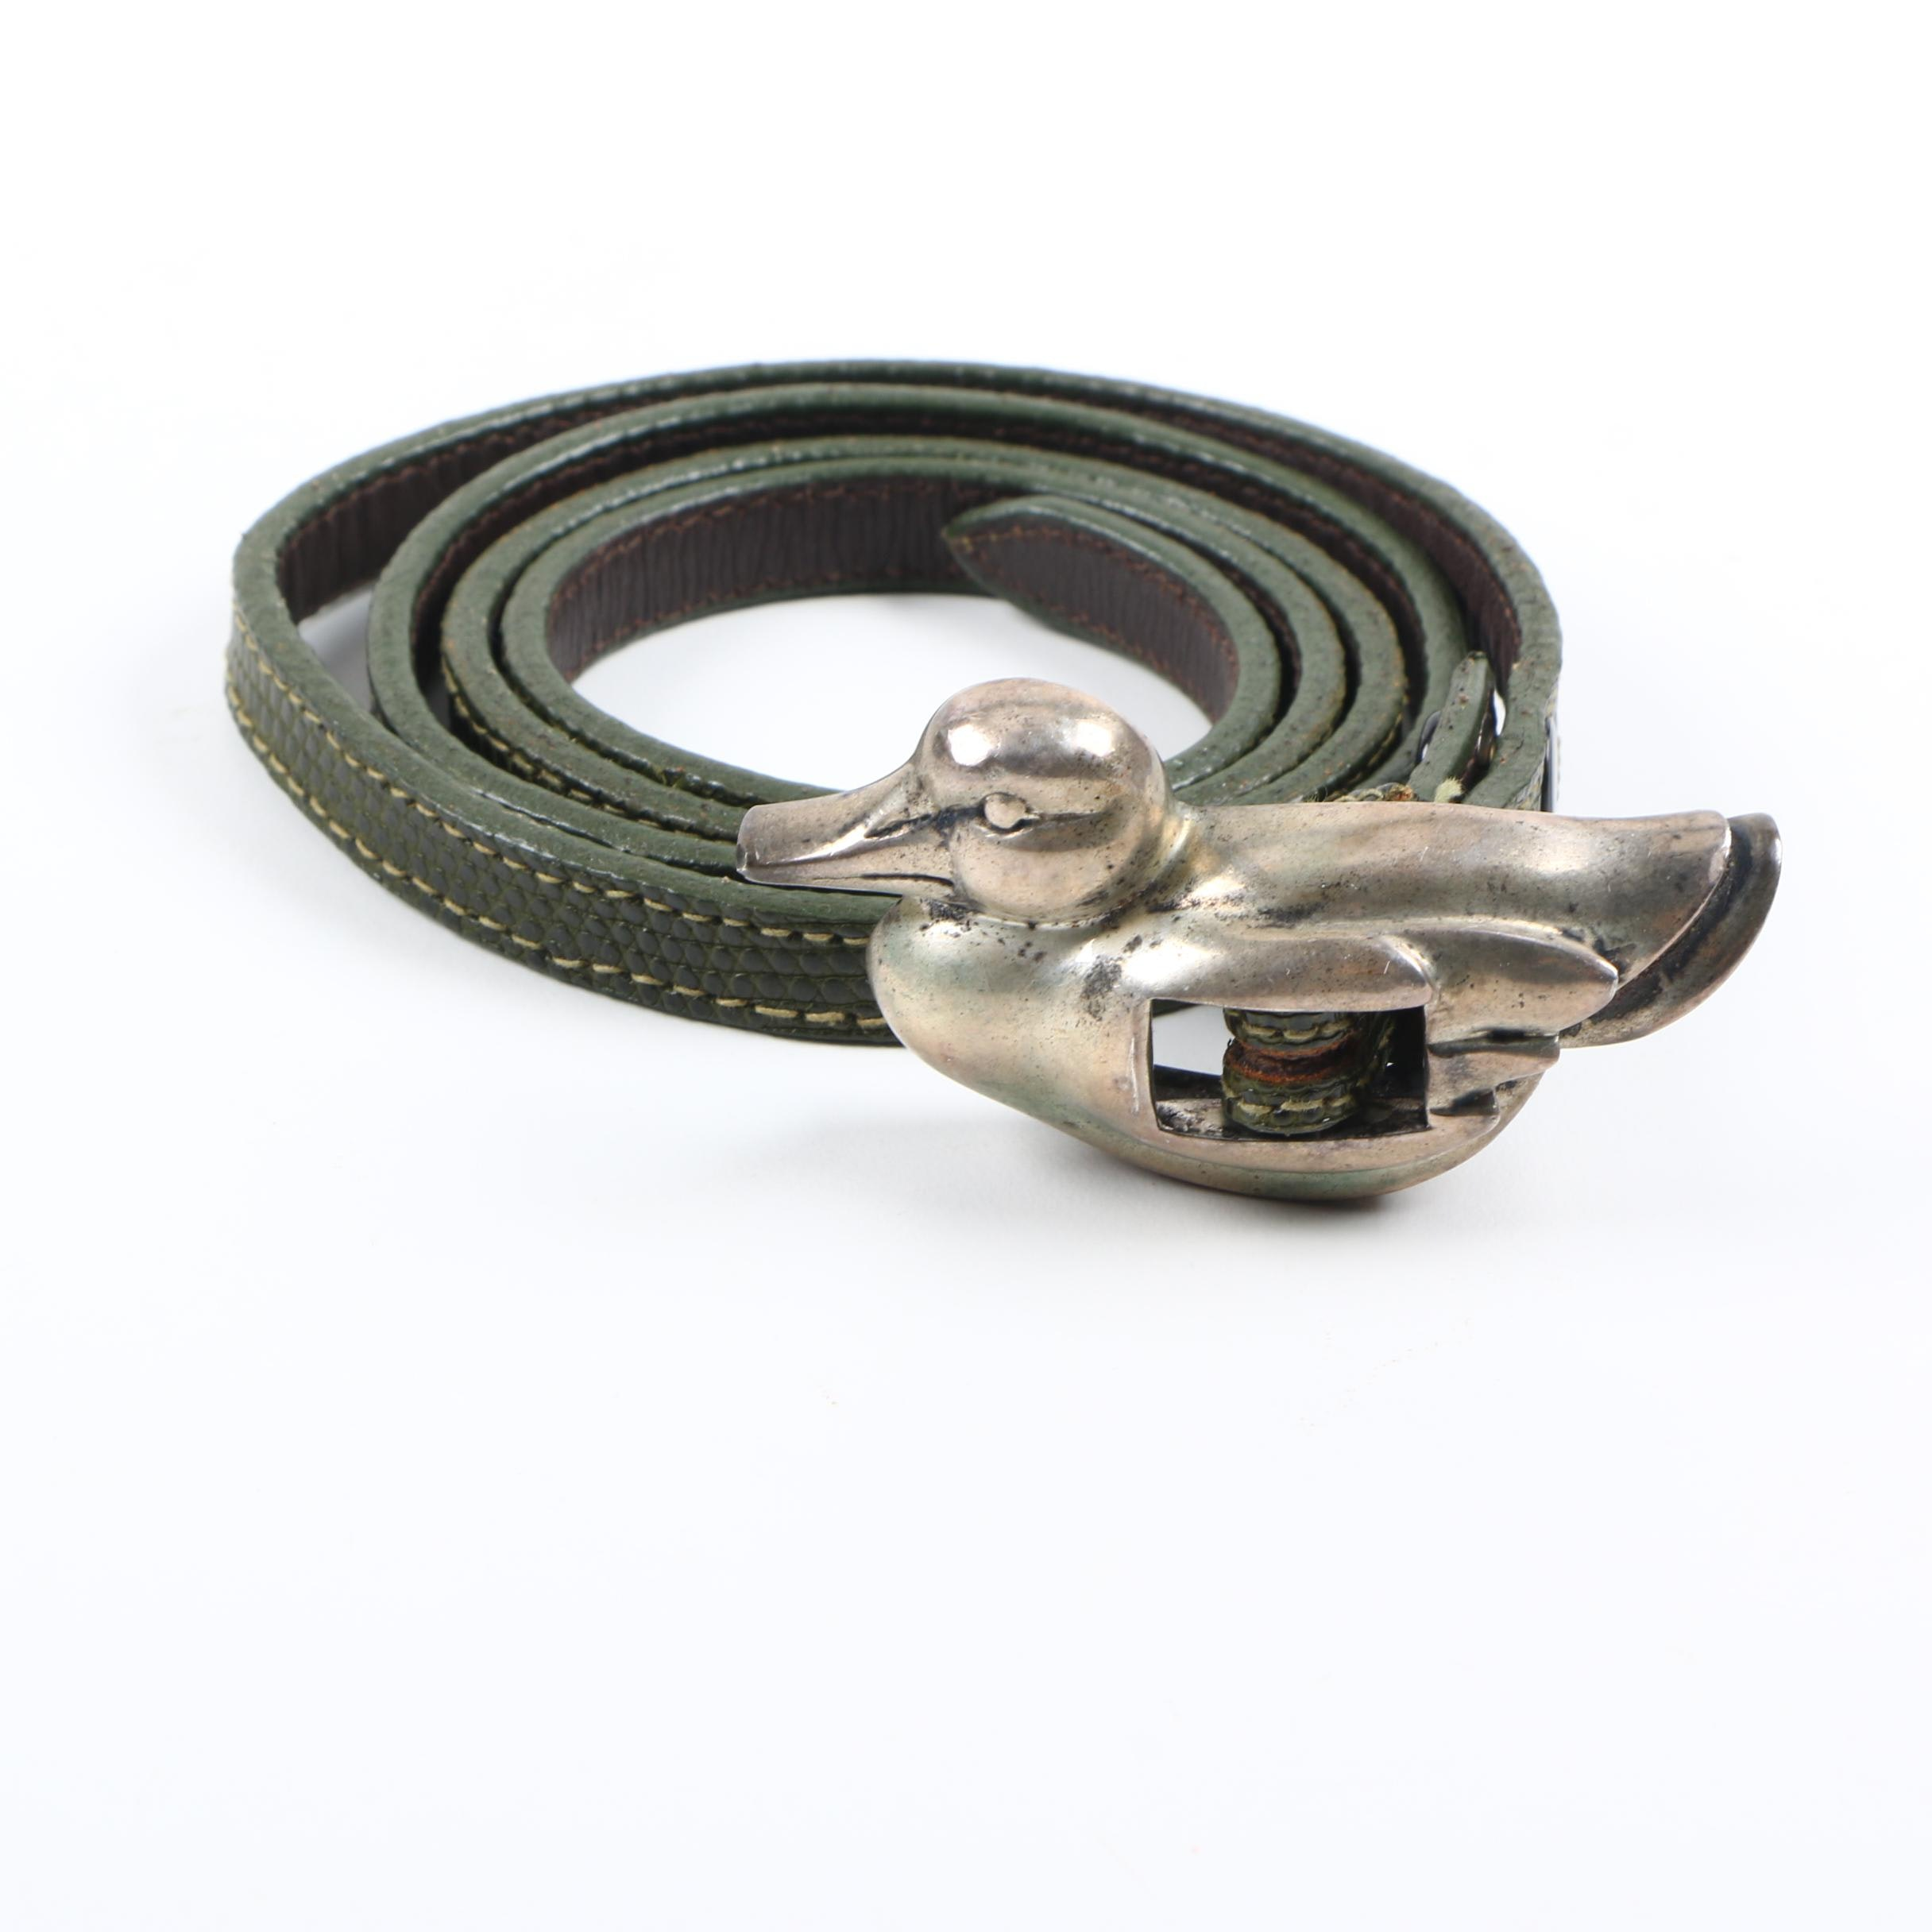 Barry Kieselstein-Cord Green Reptile Belt with Sterling Silver Buckle